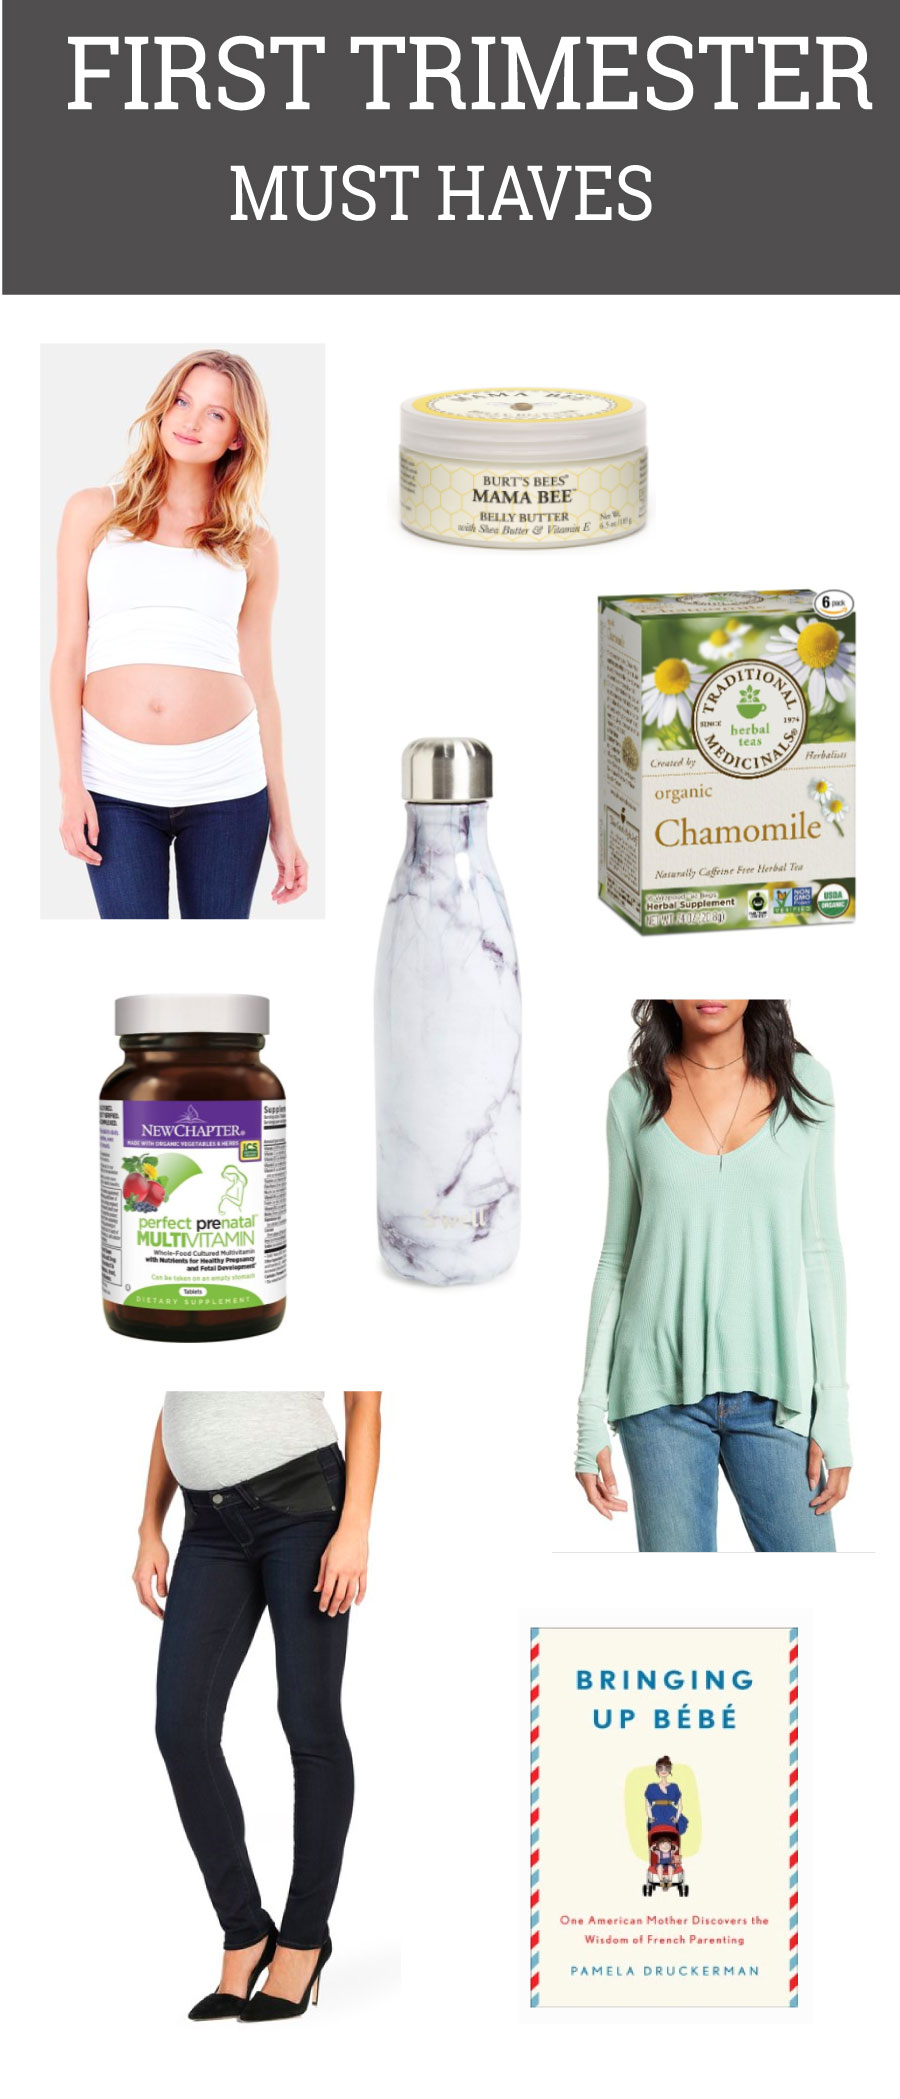 First Trimester Must Haves by popular blogger Life By Lee